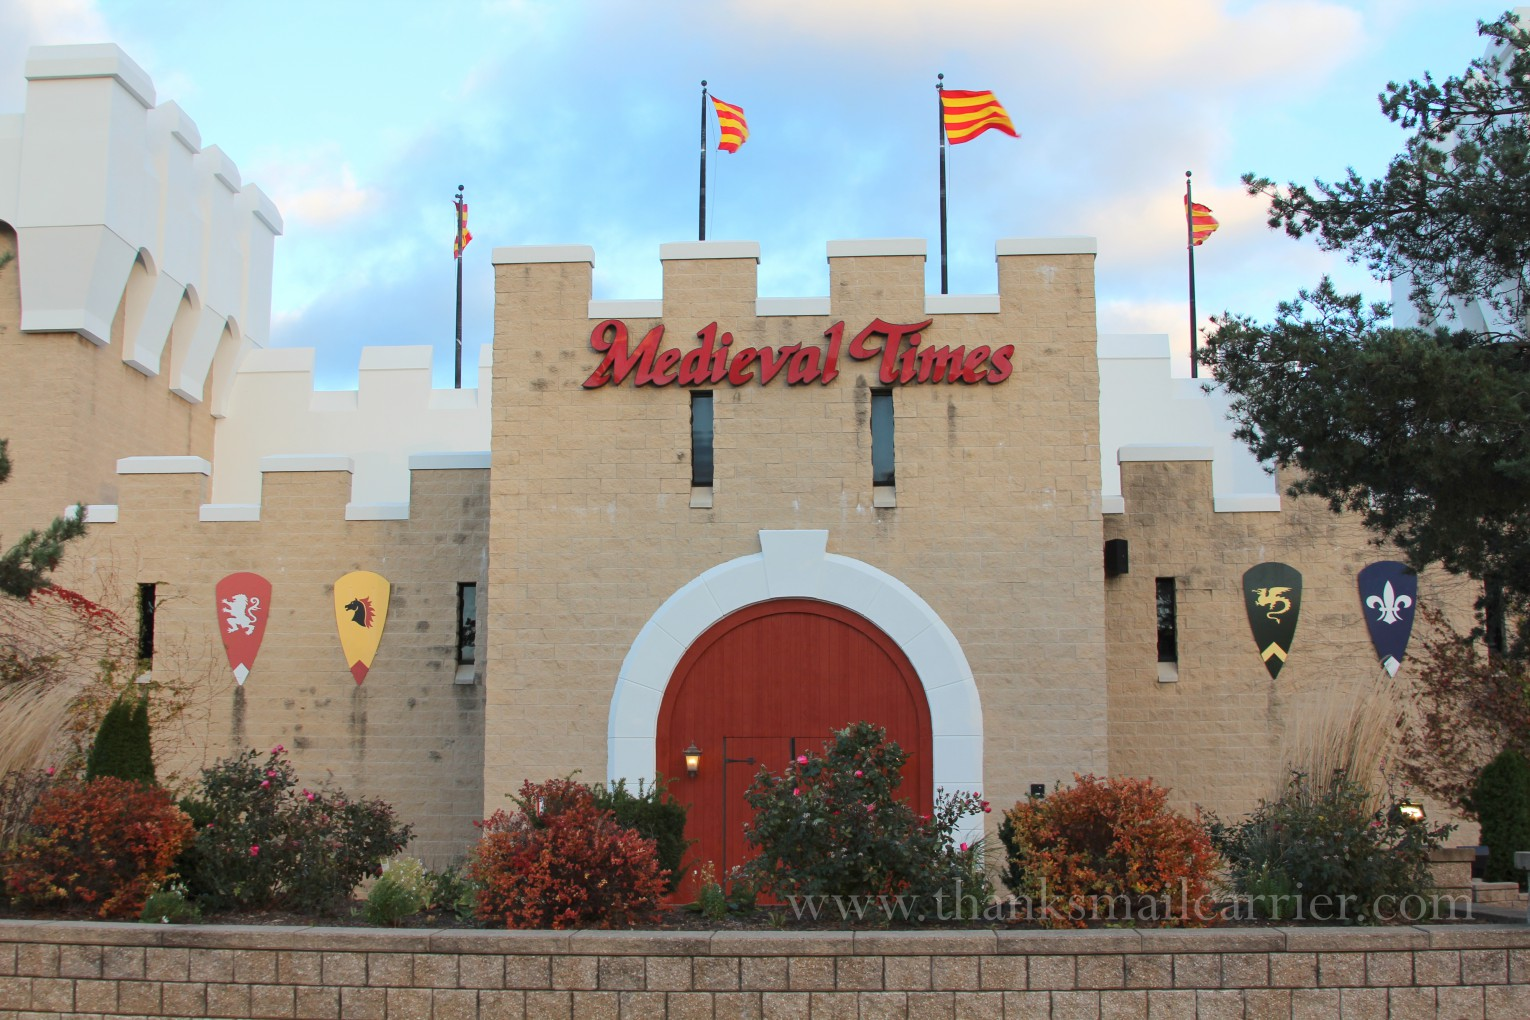 Stay within 2 miles of Schaumburg Medieval Times, with 8 hotels to pick from. Consider the Country Inn & Suites By Carlson Schaumburg, the Sonesta ES Suites Schaumburg Chicago and the Holiday Inn Express Chicago - Schaumburg.